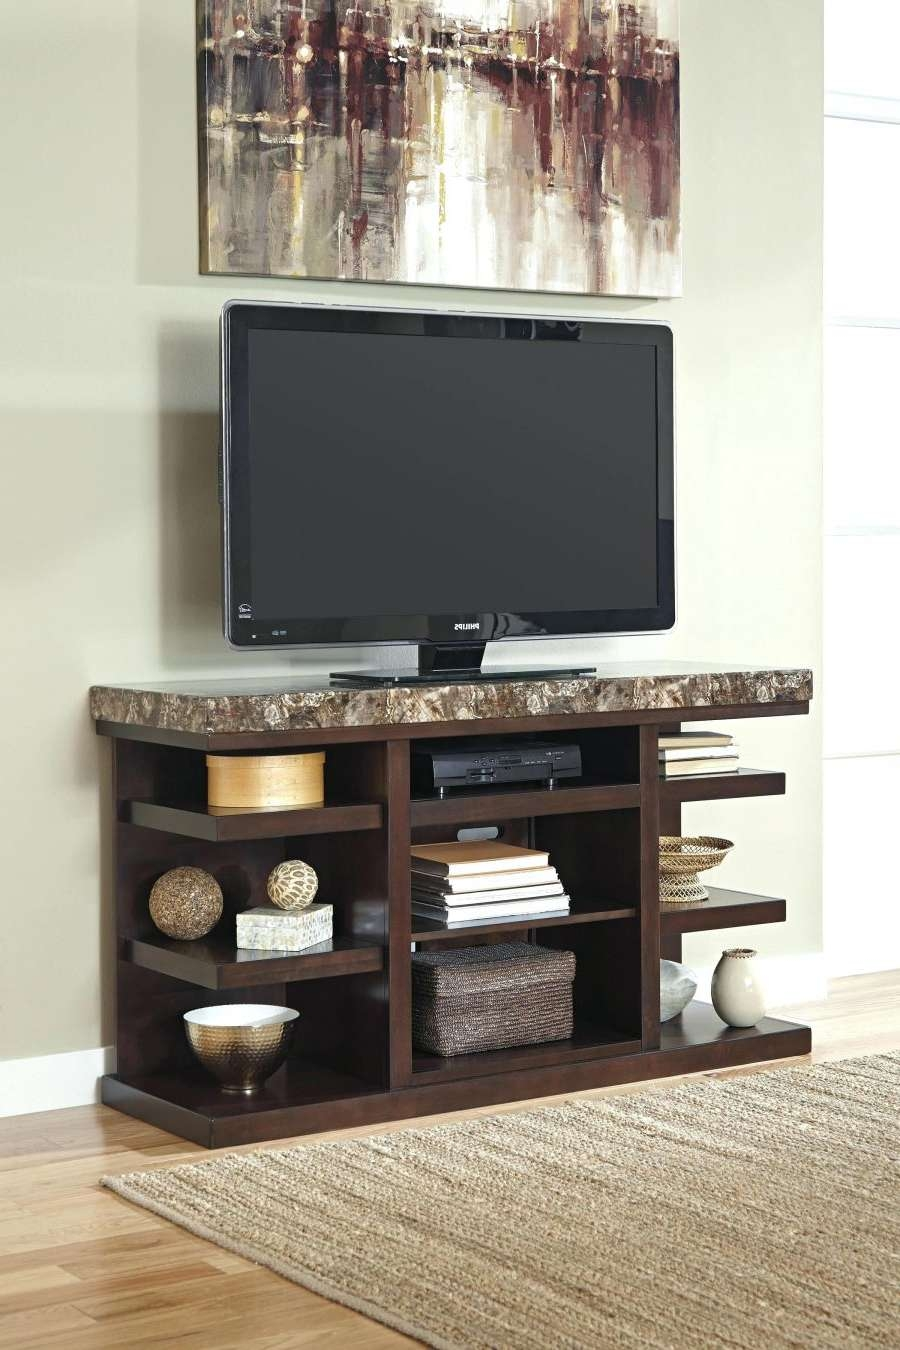 Tv Stand : Open Tv Stand Contemporary Large With Stone Look Top With Regard To Open Shelf Tv Stands (View 13 of 15)